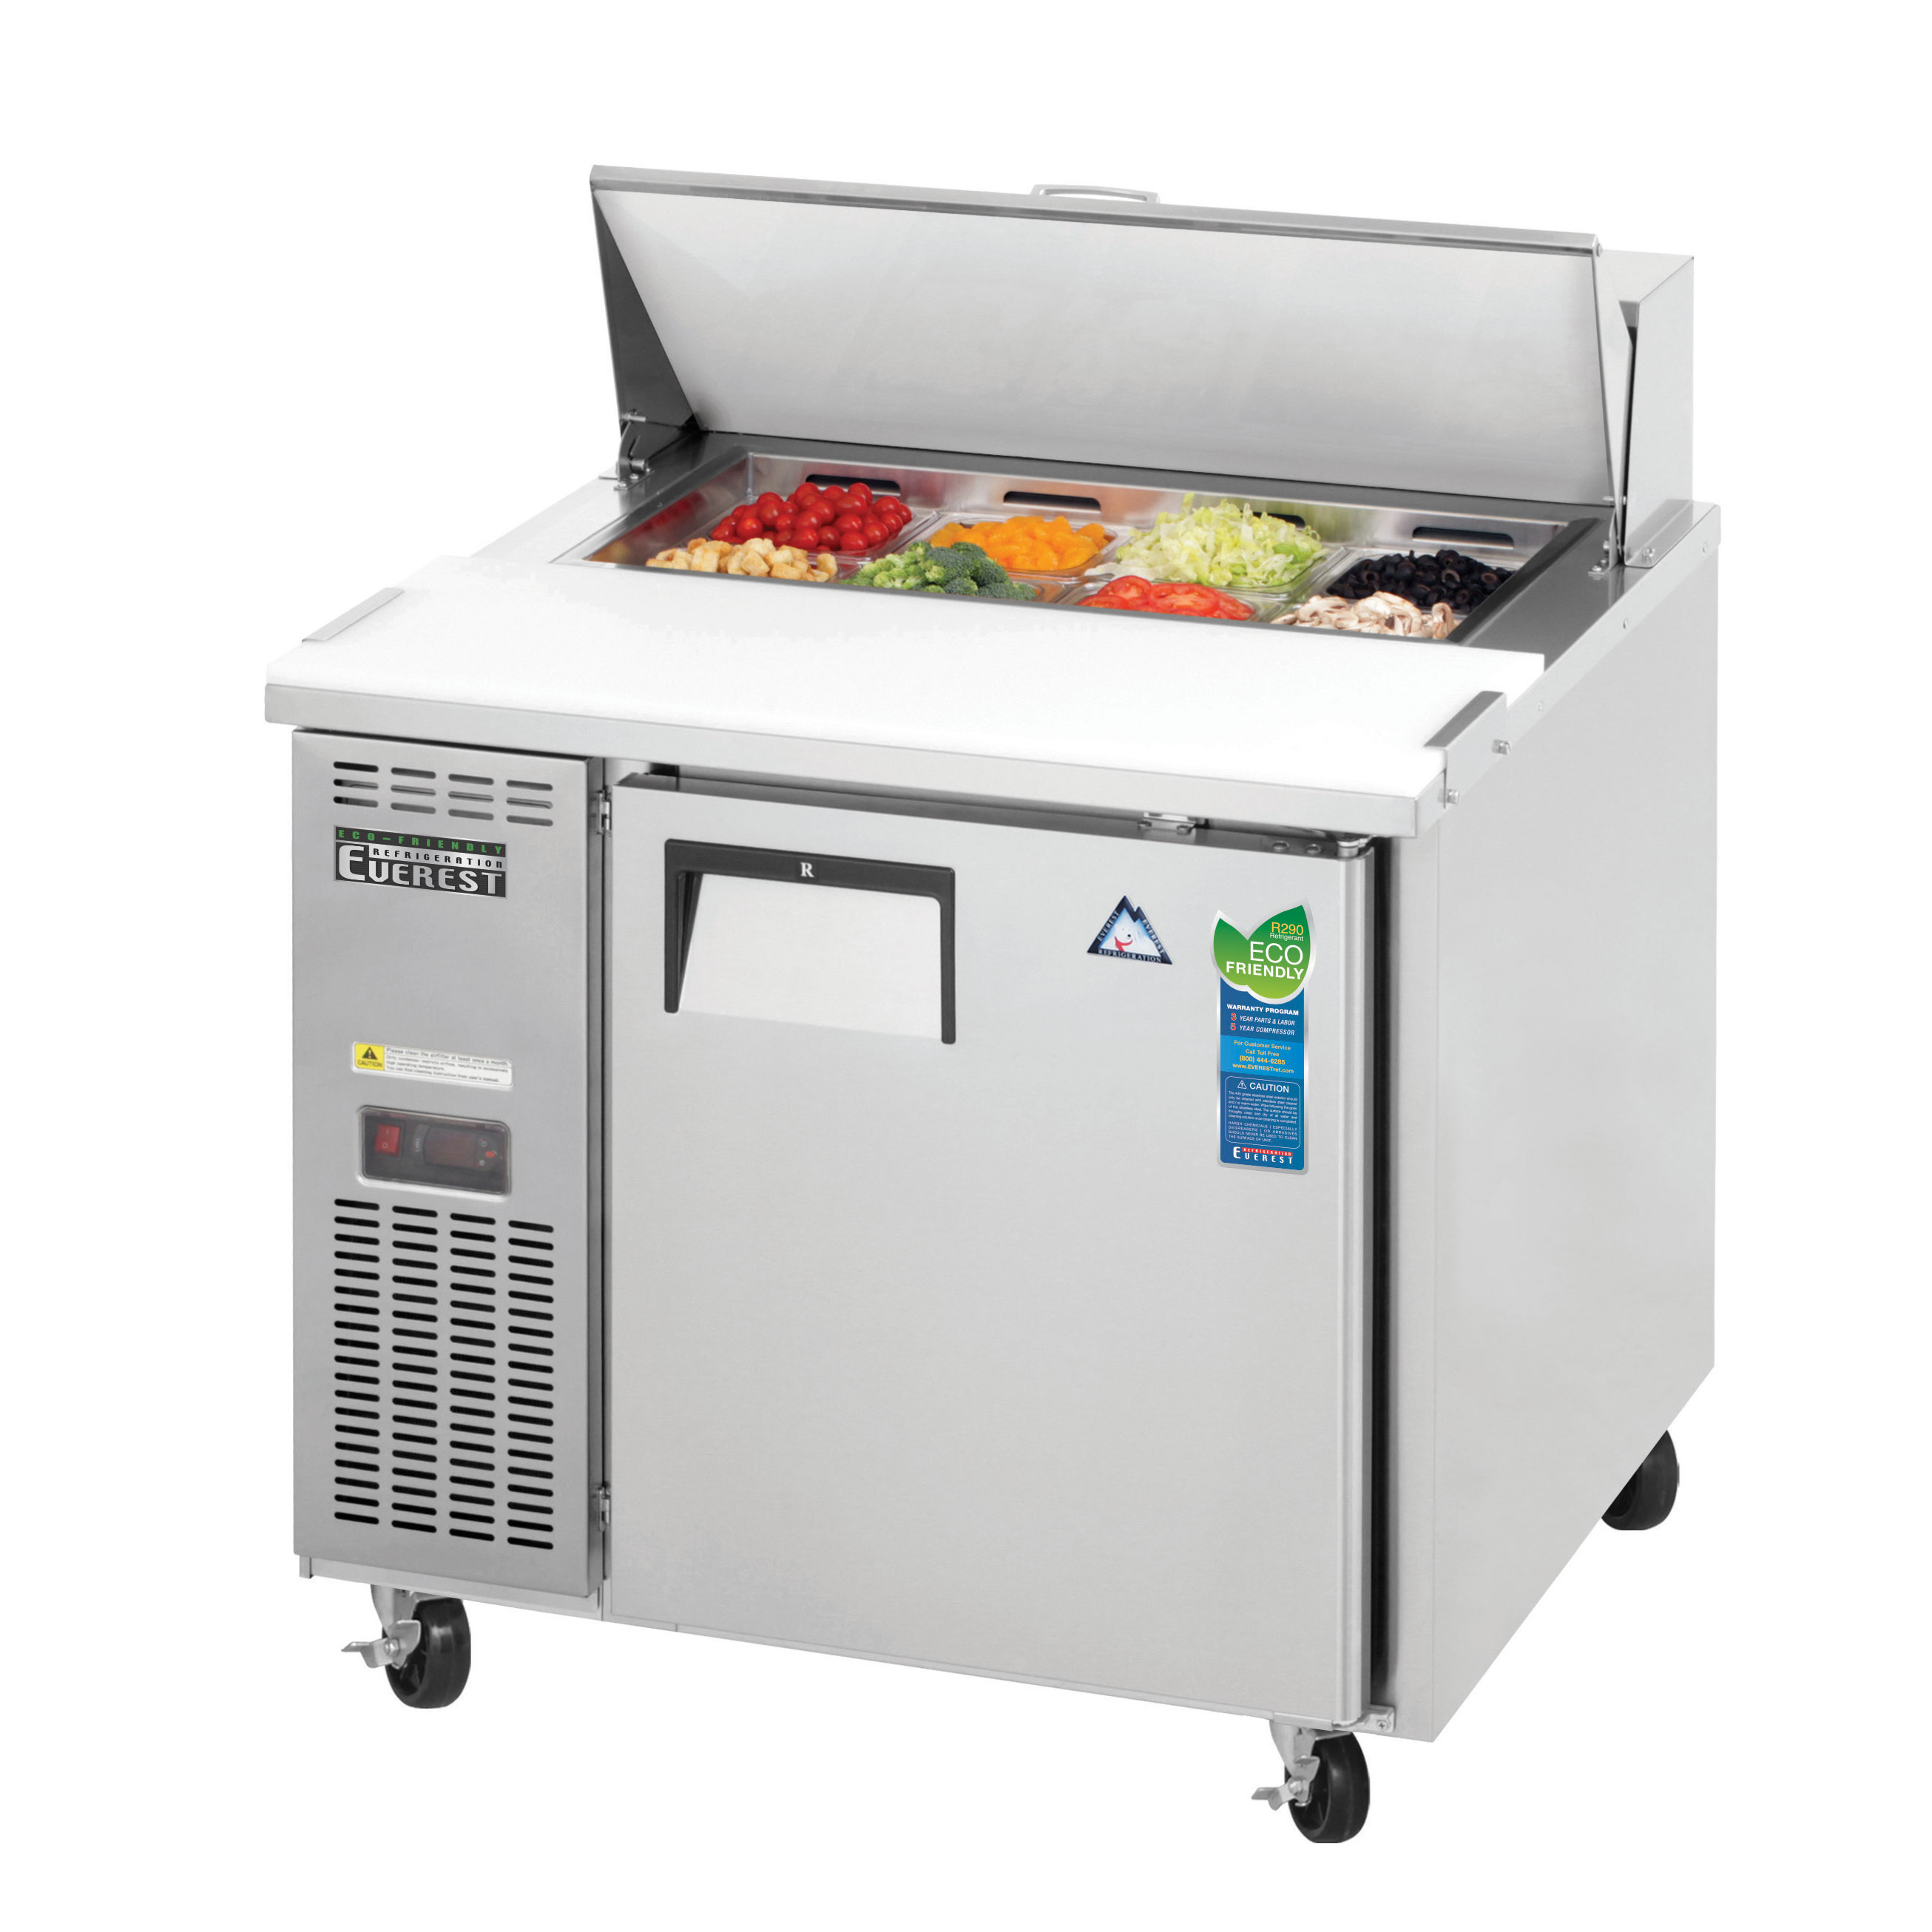 Everest Refrigeration EPR1 refrigerated counter, sandwich / salad unit